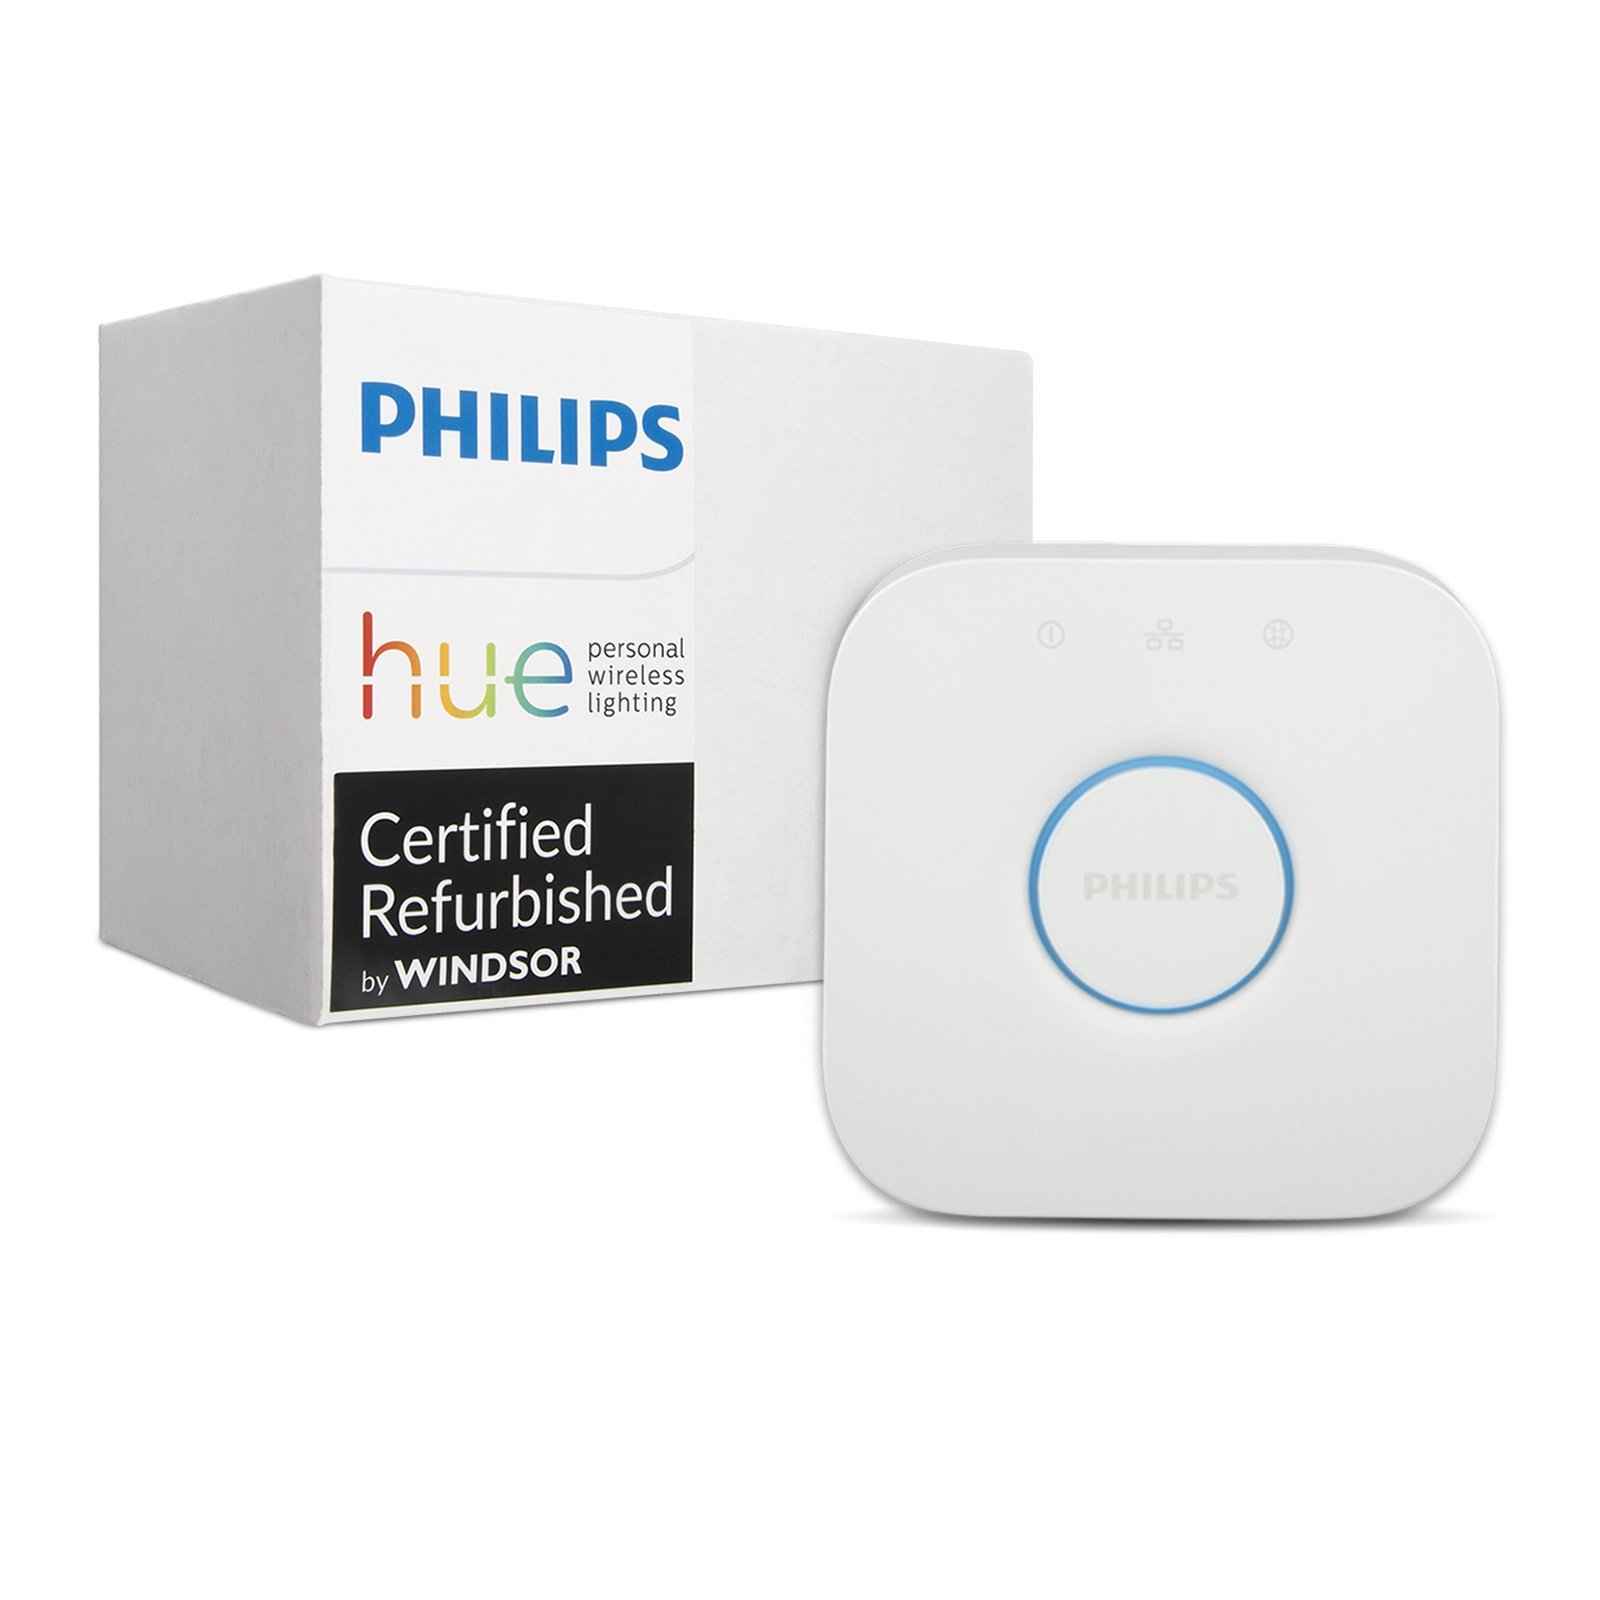 Philips Hue Smart Bridge - 2nd Generation, Latest Model - Compatible with Alexa, Apple HomeKit and Google Assistant (Certified Refurbished) by Philips